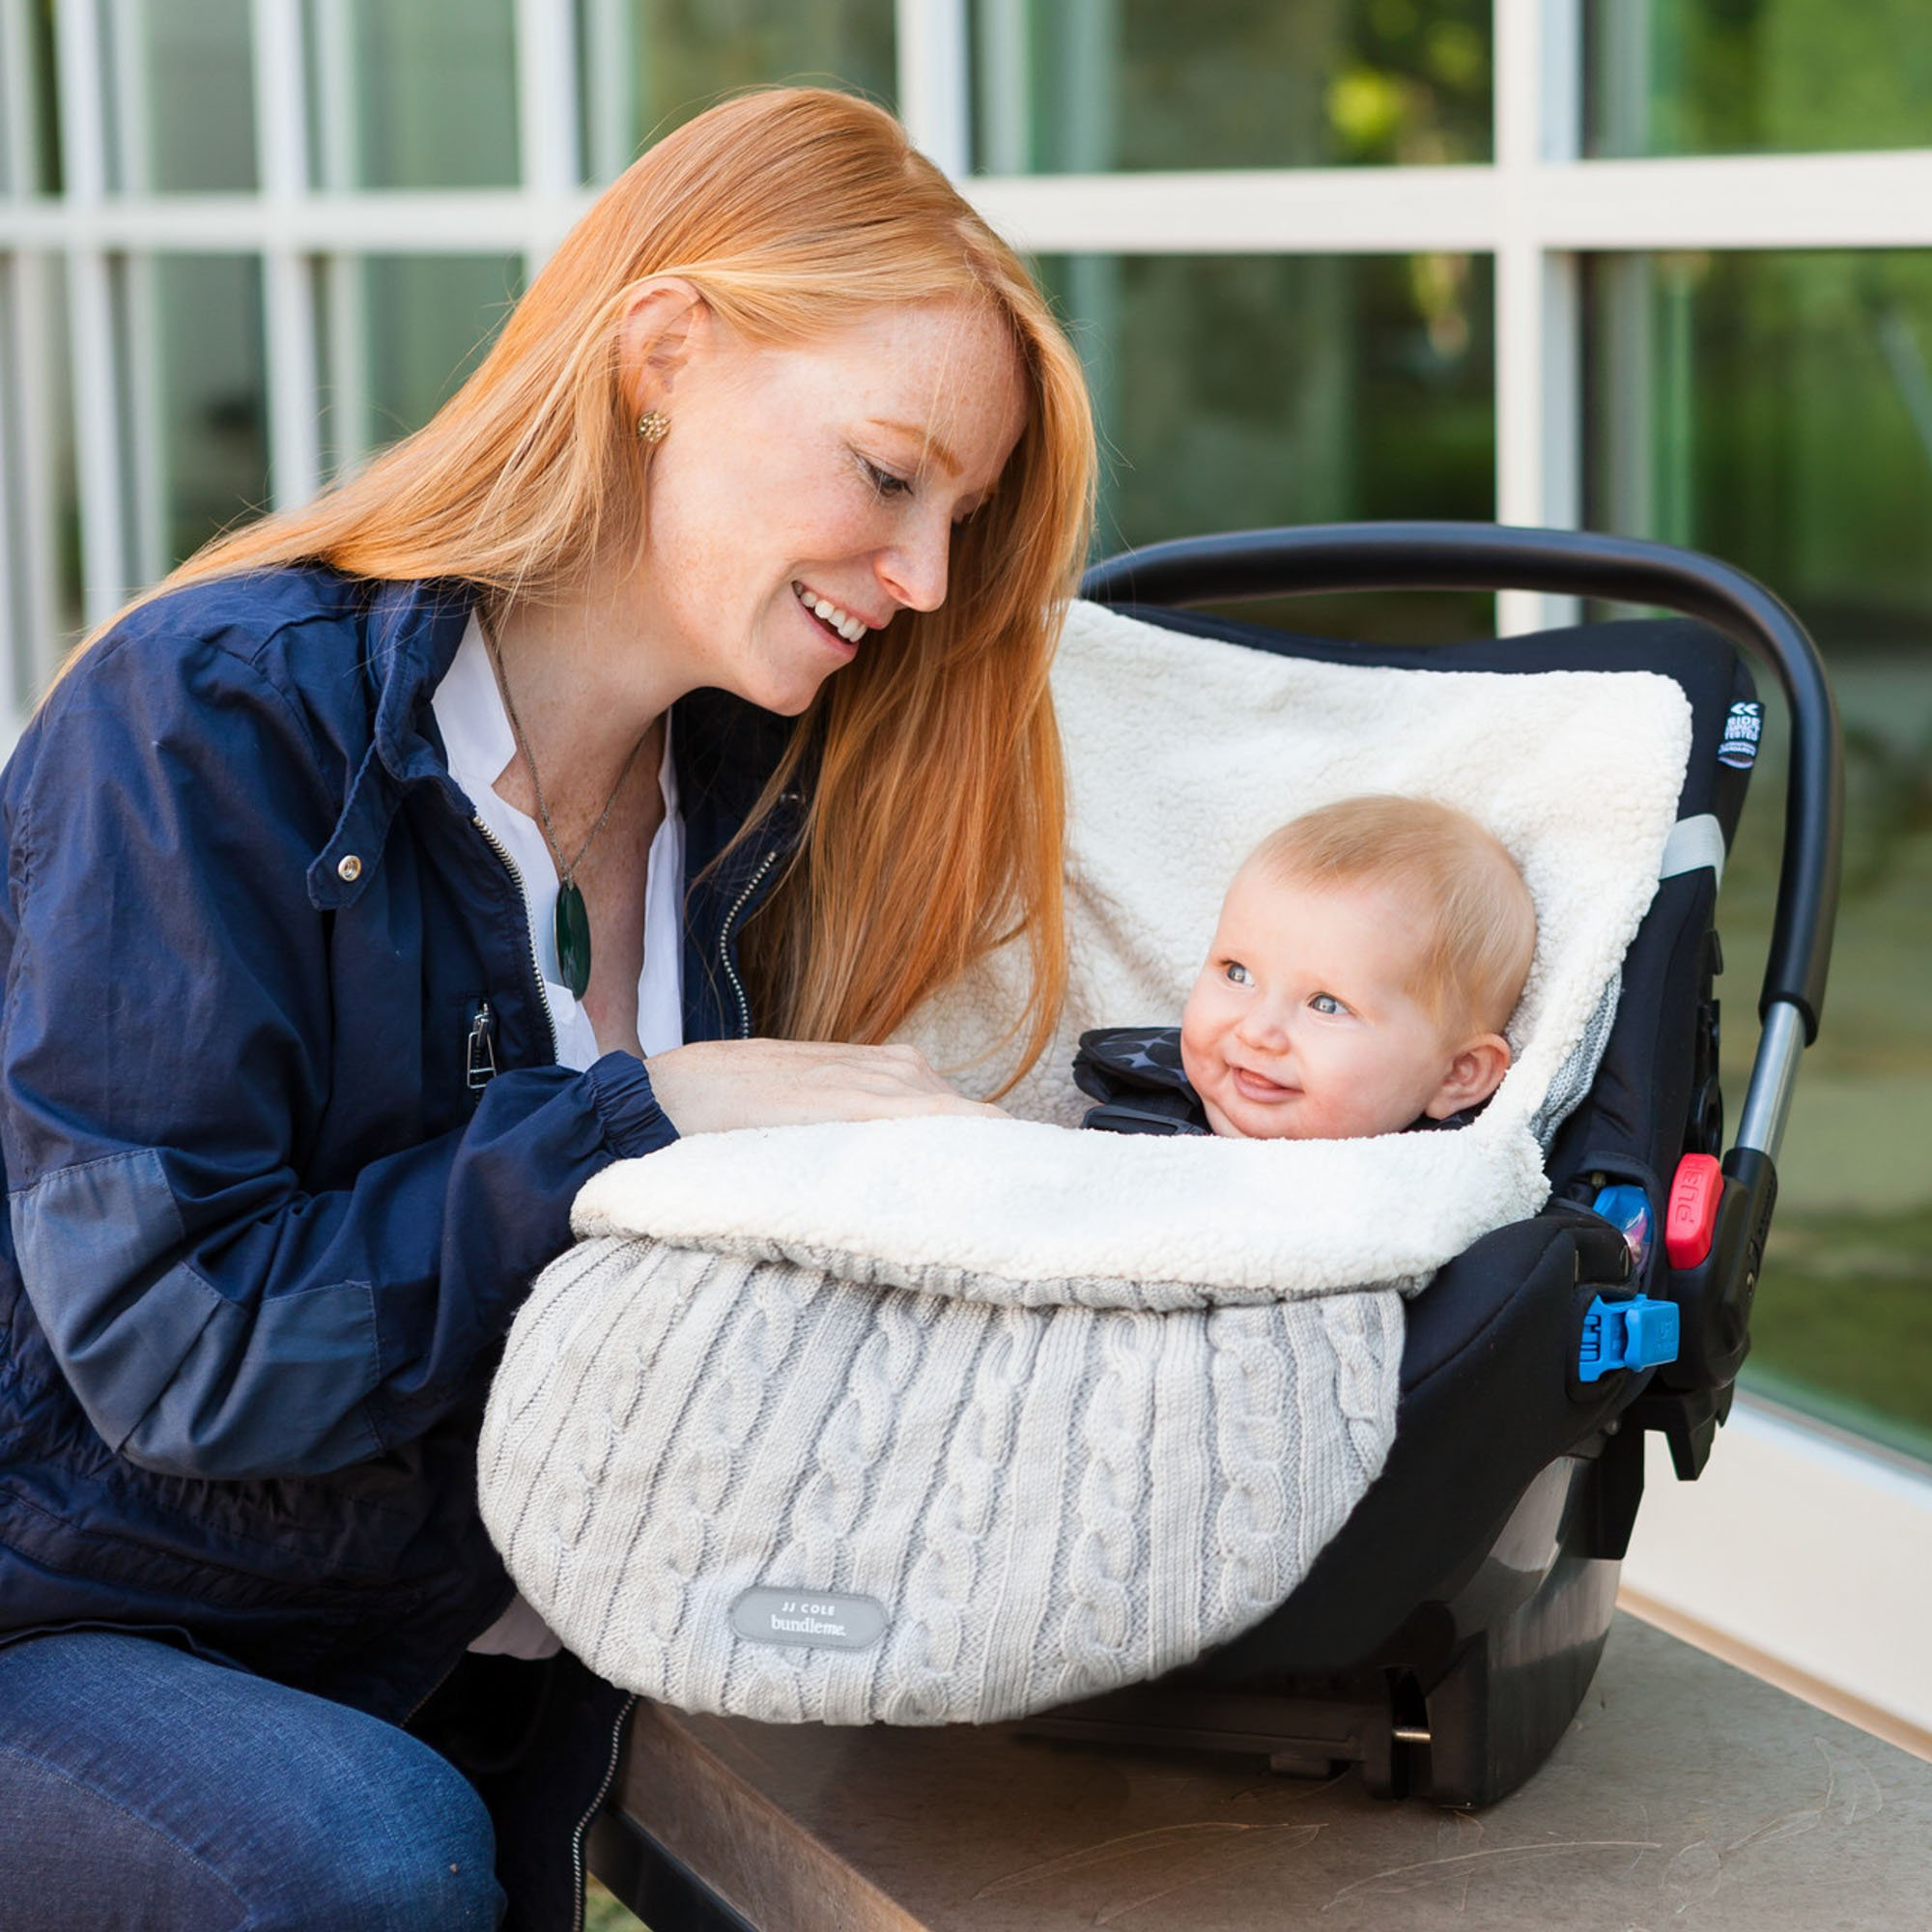 JJ Cole - Knit Bundleme Set, Blanket Cover to Protect Baby from Cold Weather with Car Seats and Strollers, Graphite, Birth to 1 Year by JJ Cole (Image #3)